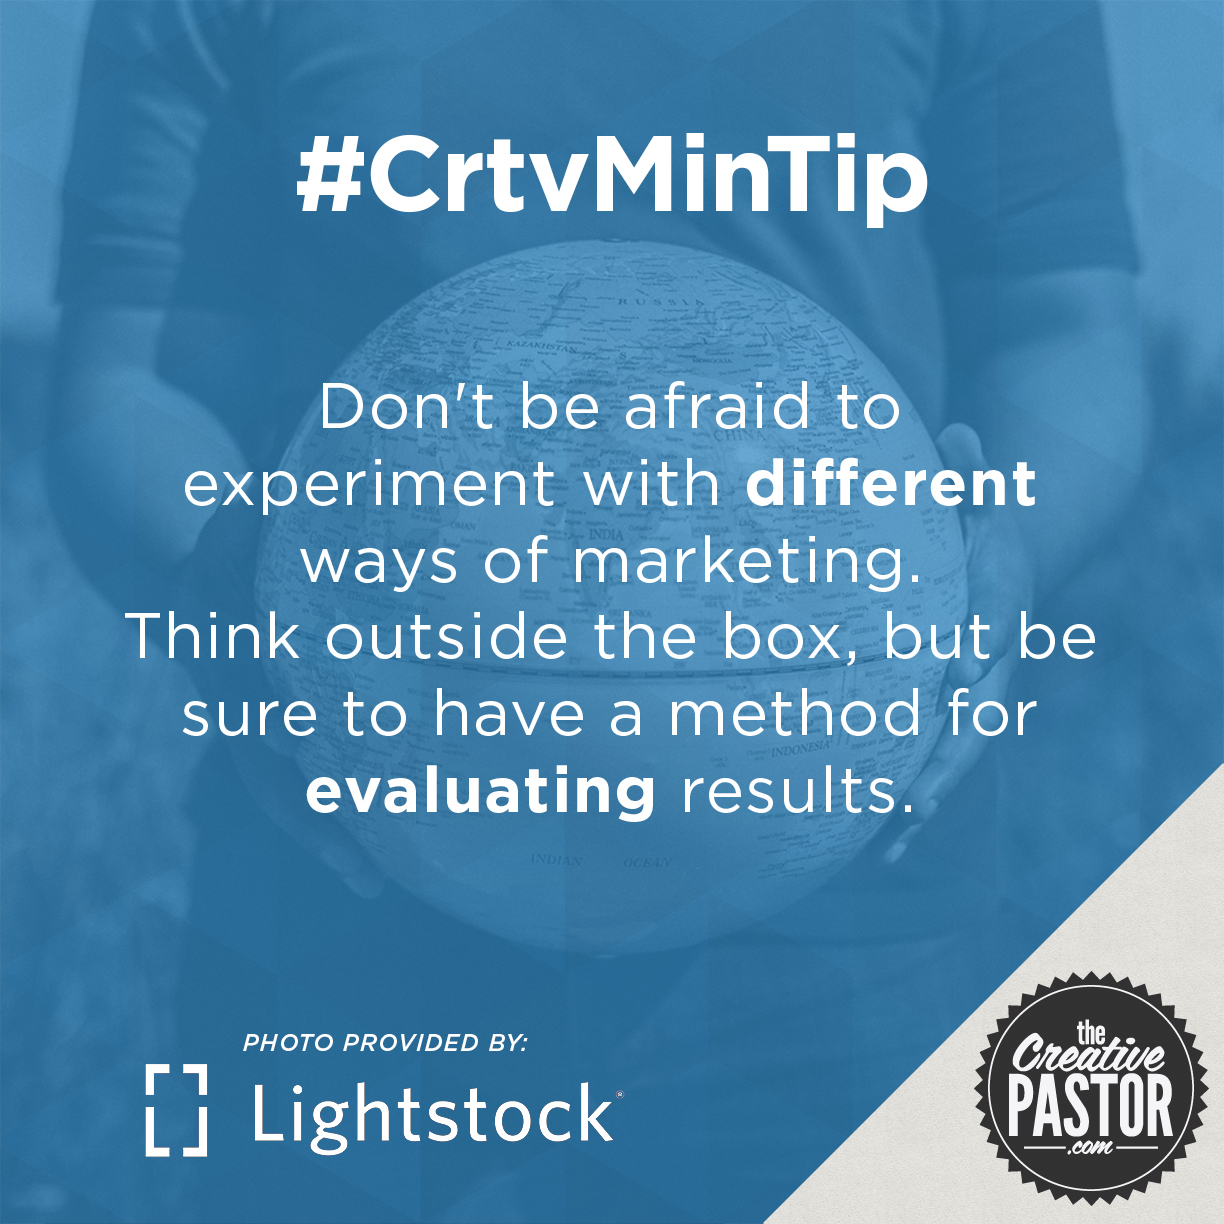 Don't be afraid to experiment with different ways of marketing.